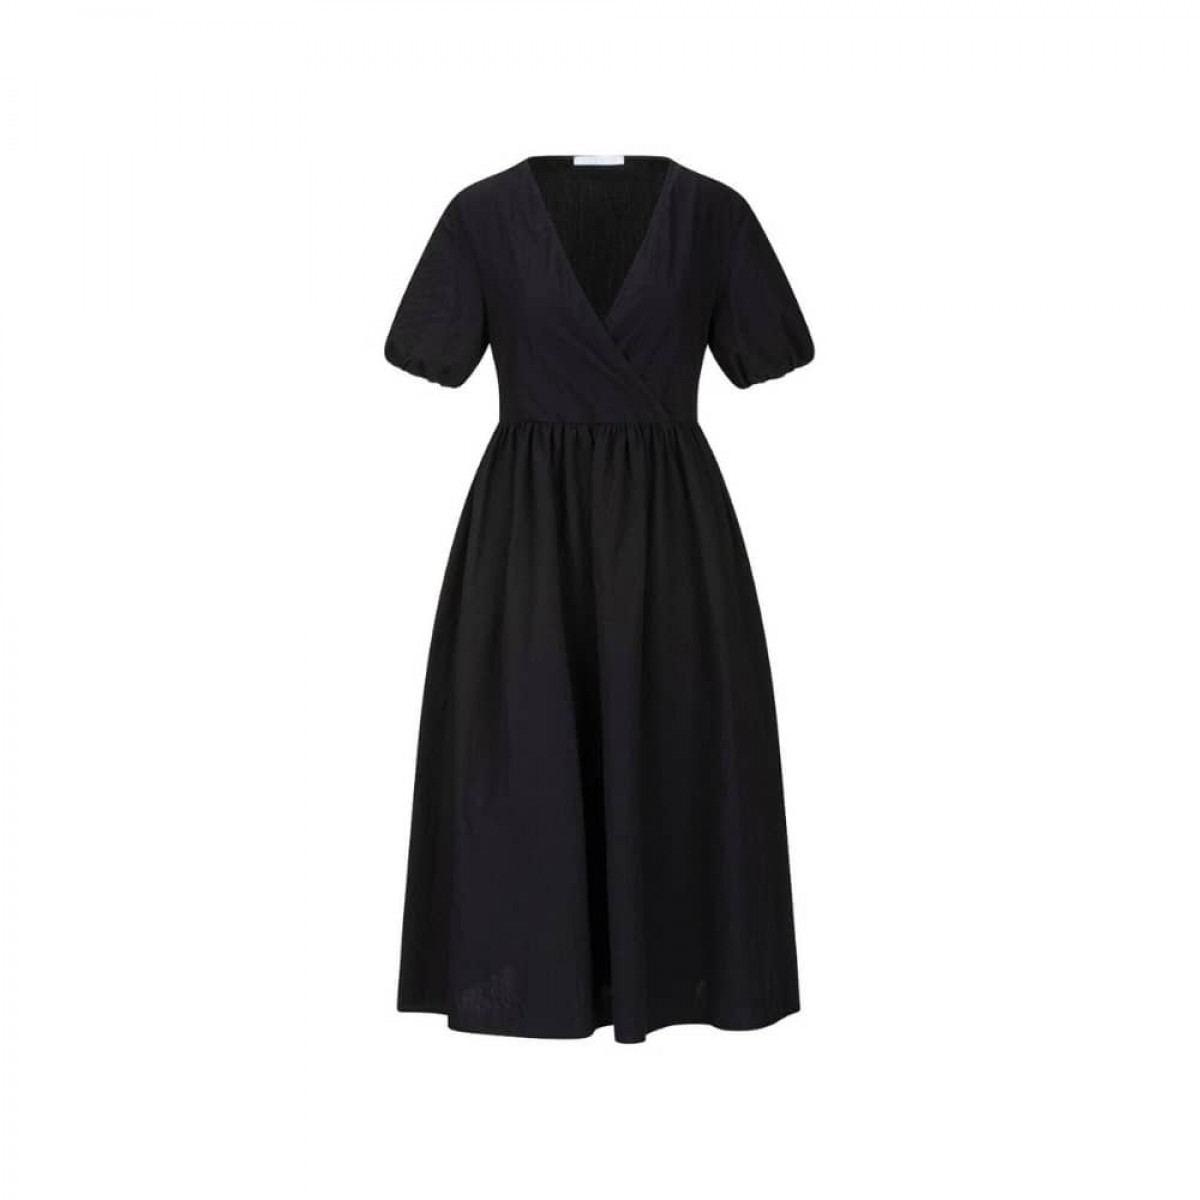 v neck dress with puff sleeves - black - front